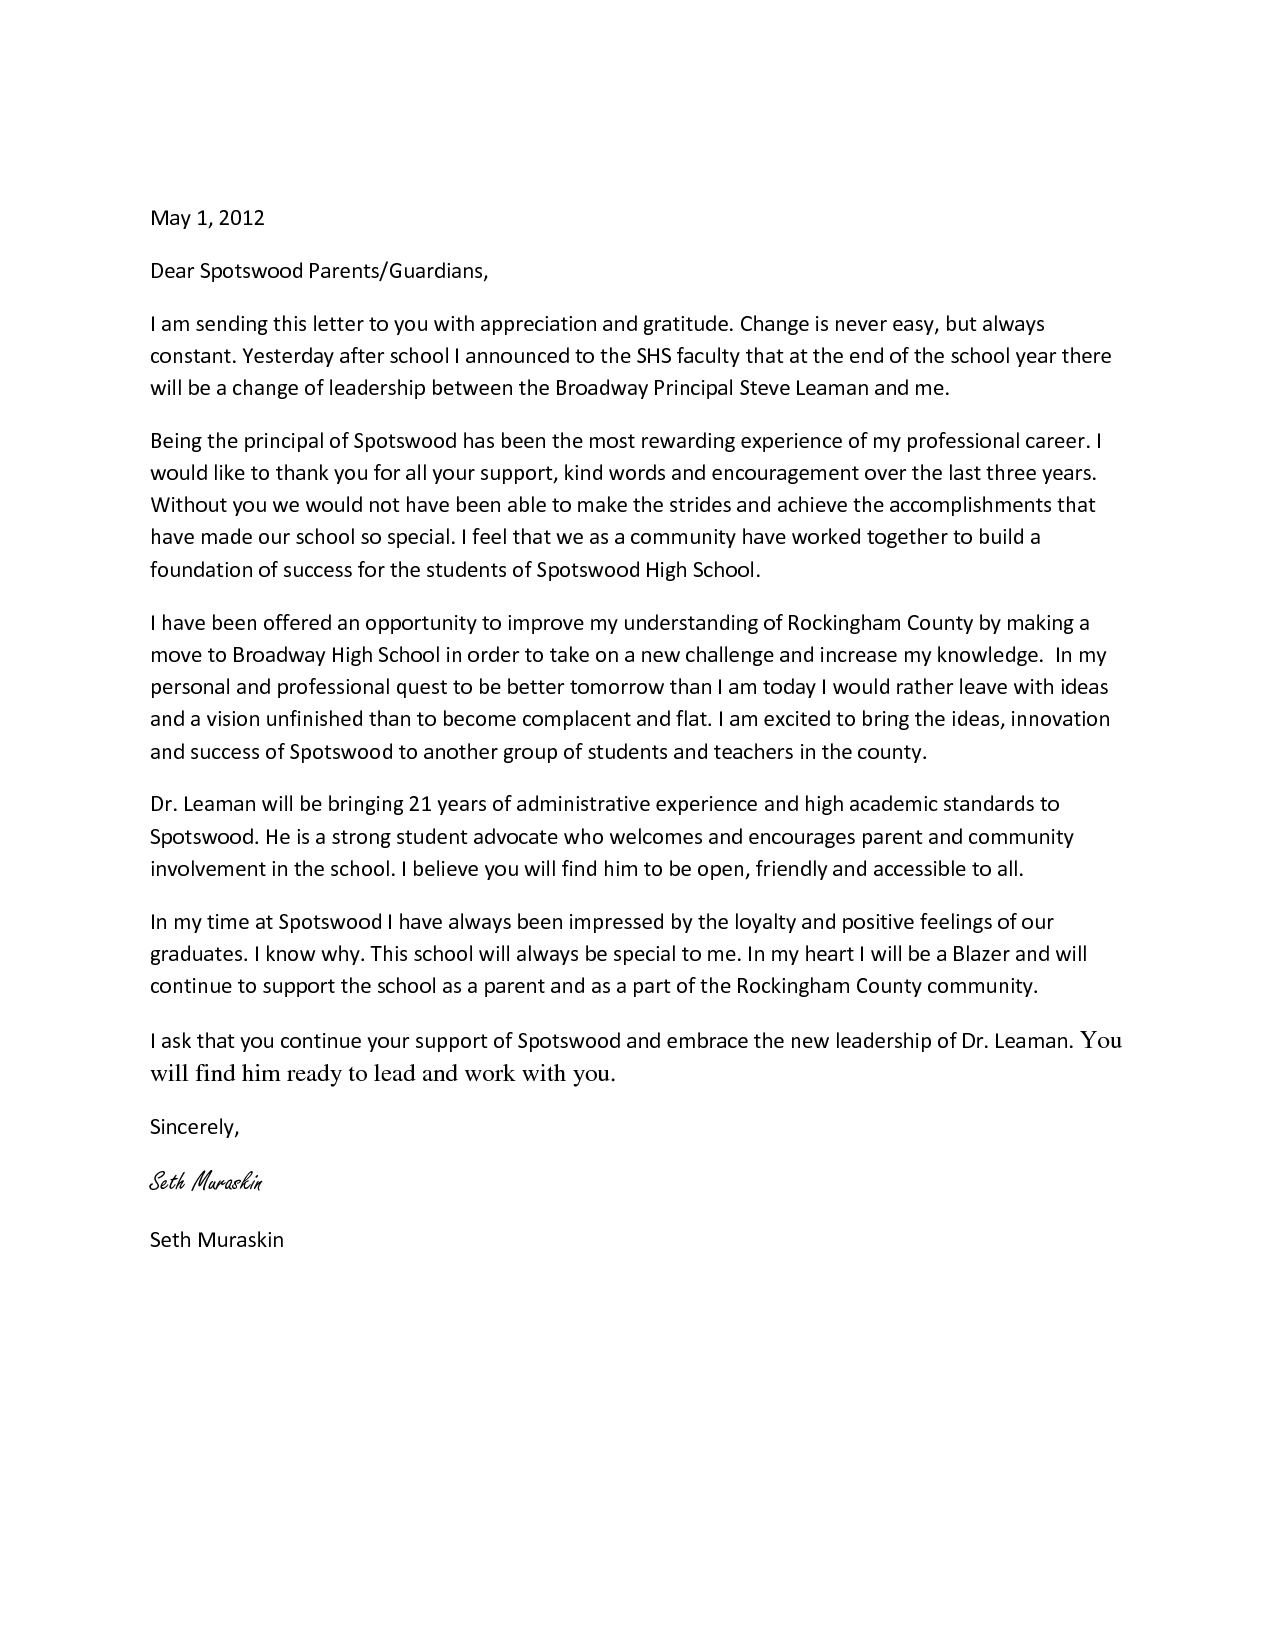 Teacher Resignation Letter To Parents Parent Welcome Letter Template